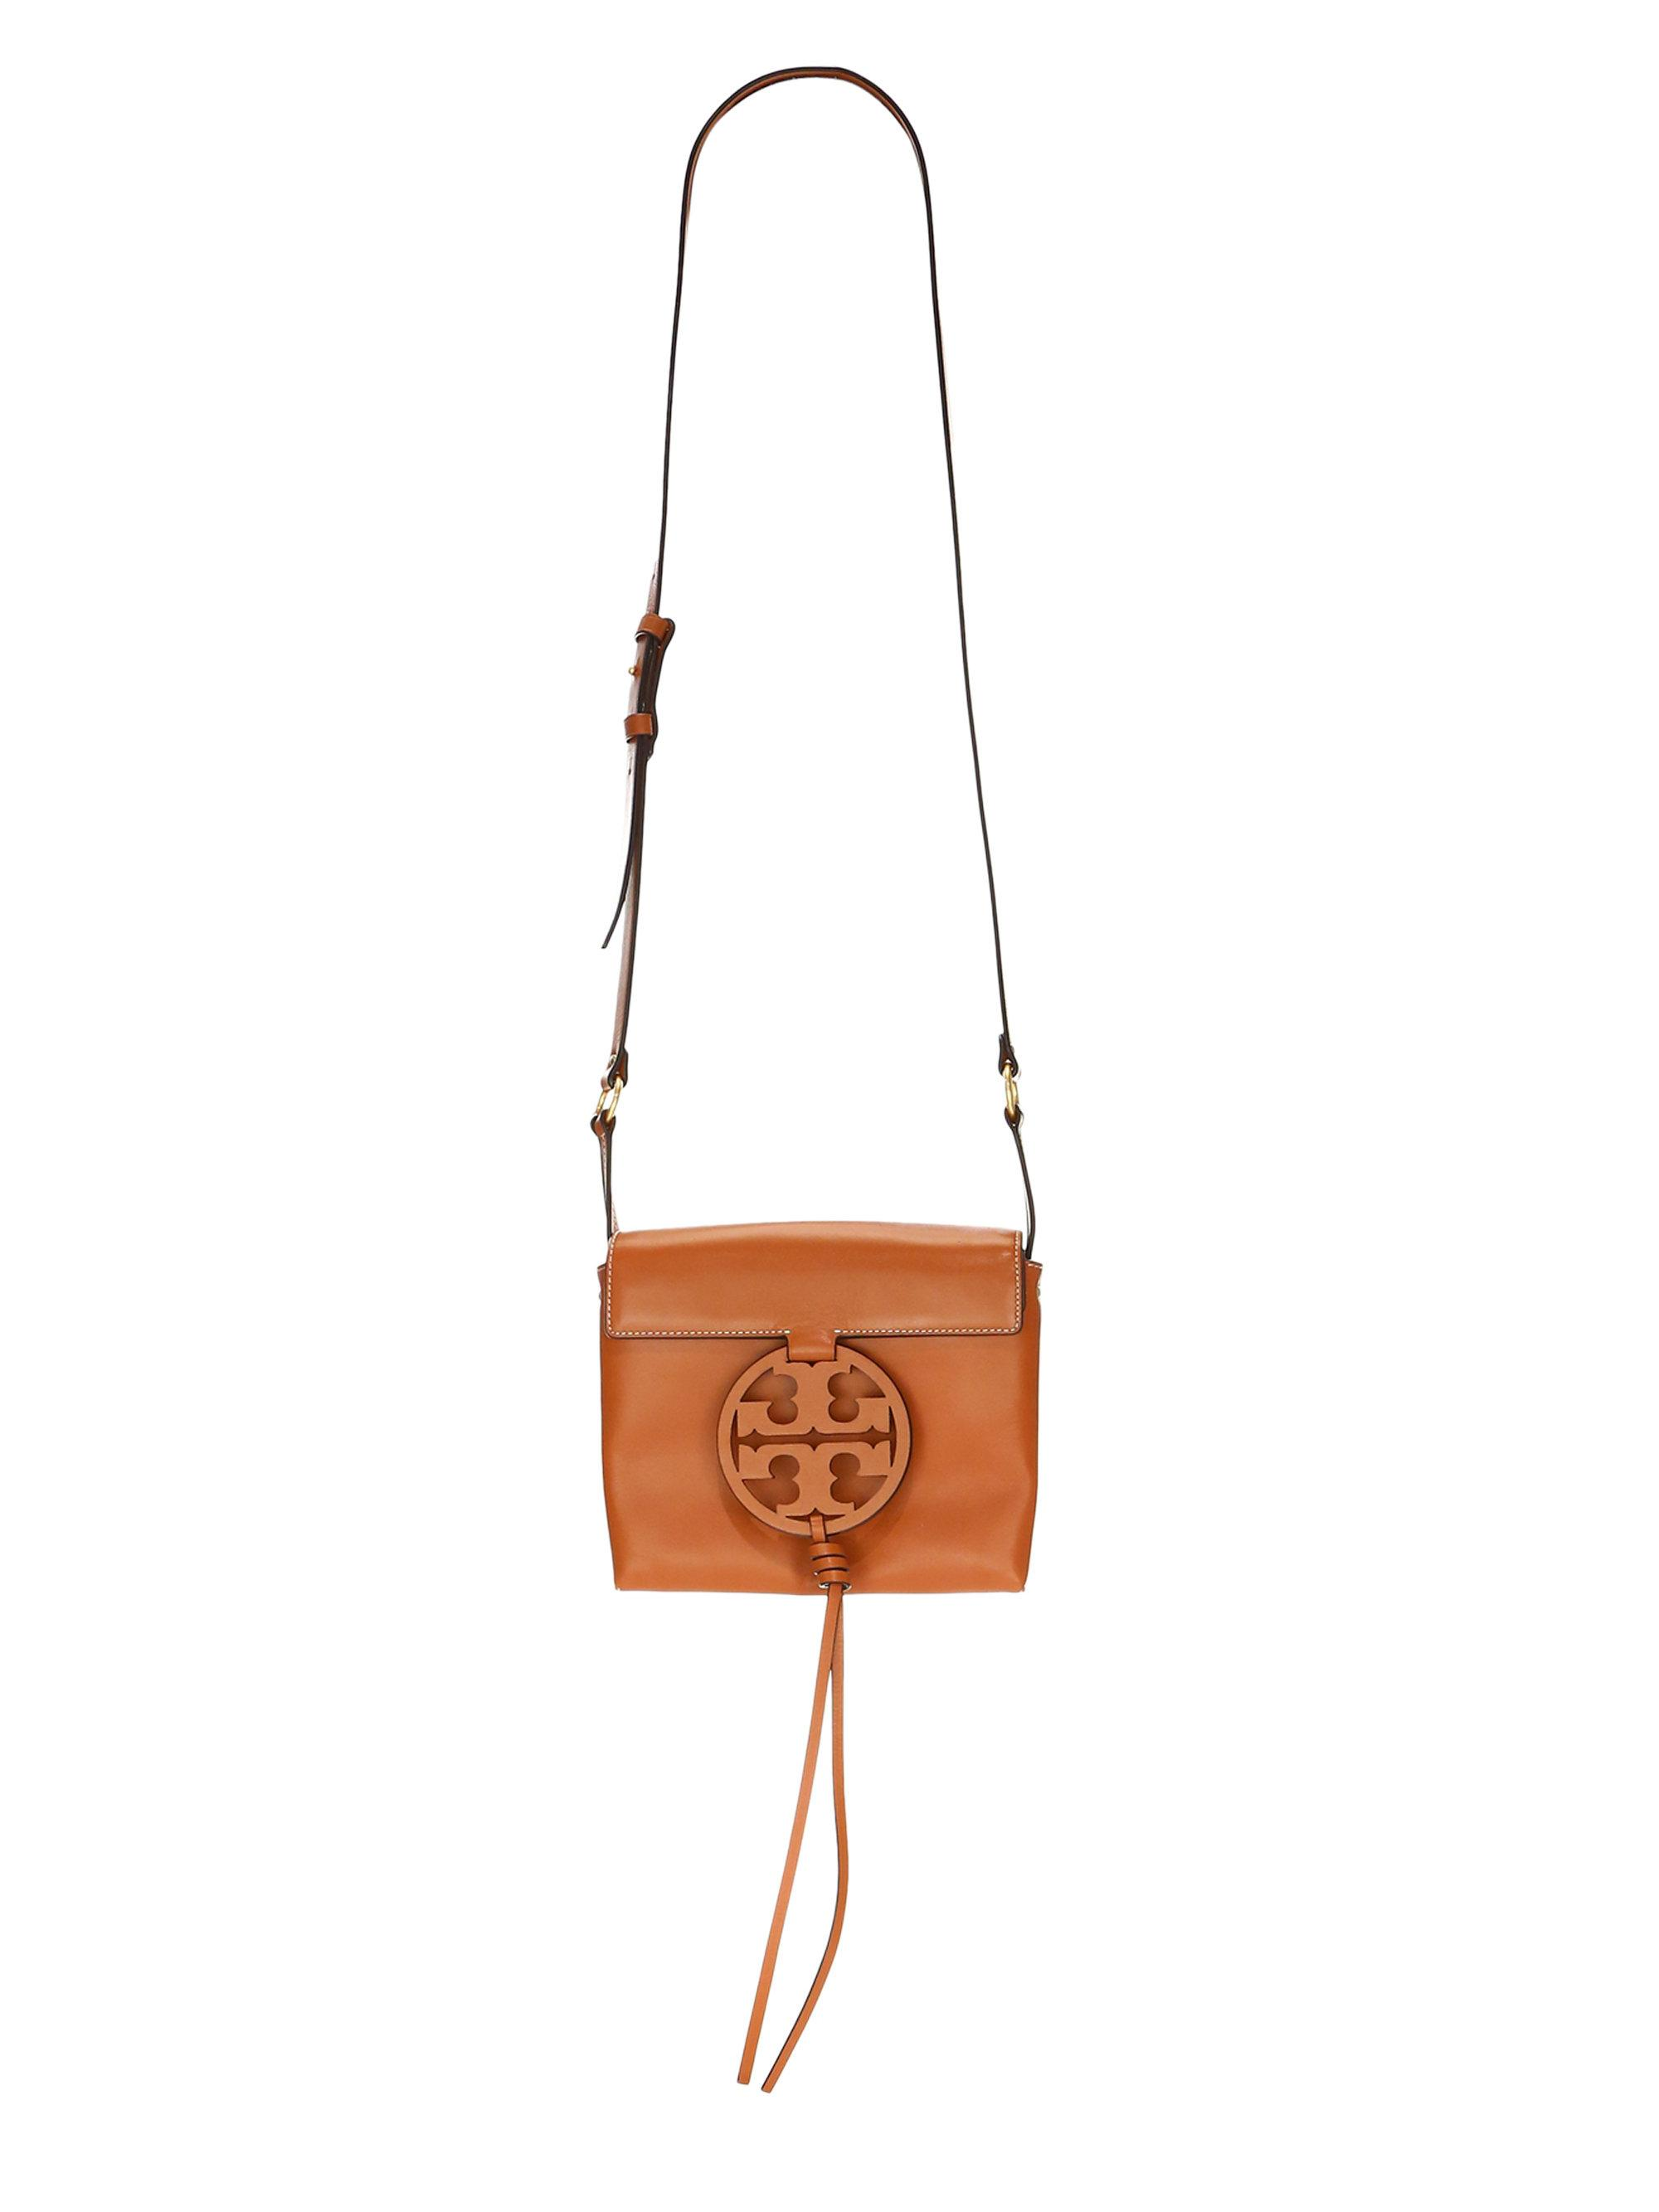 553738a64ac Lyst - Tory Burch Miller Leather Crossbody Bag in Brown